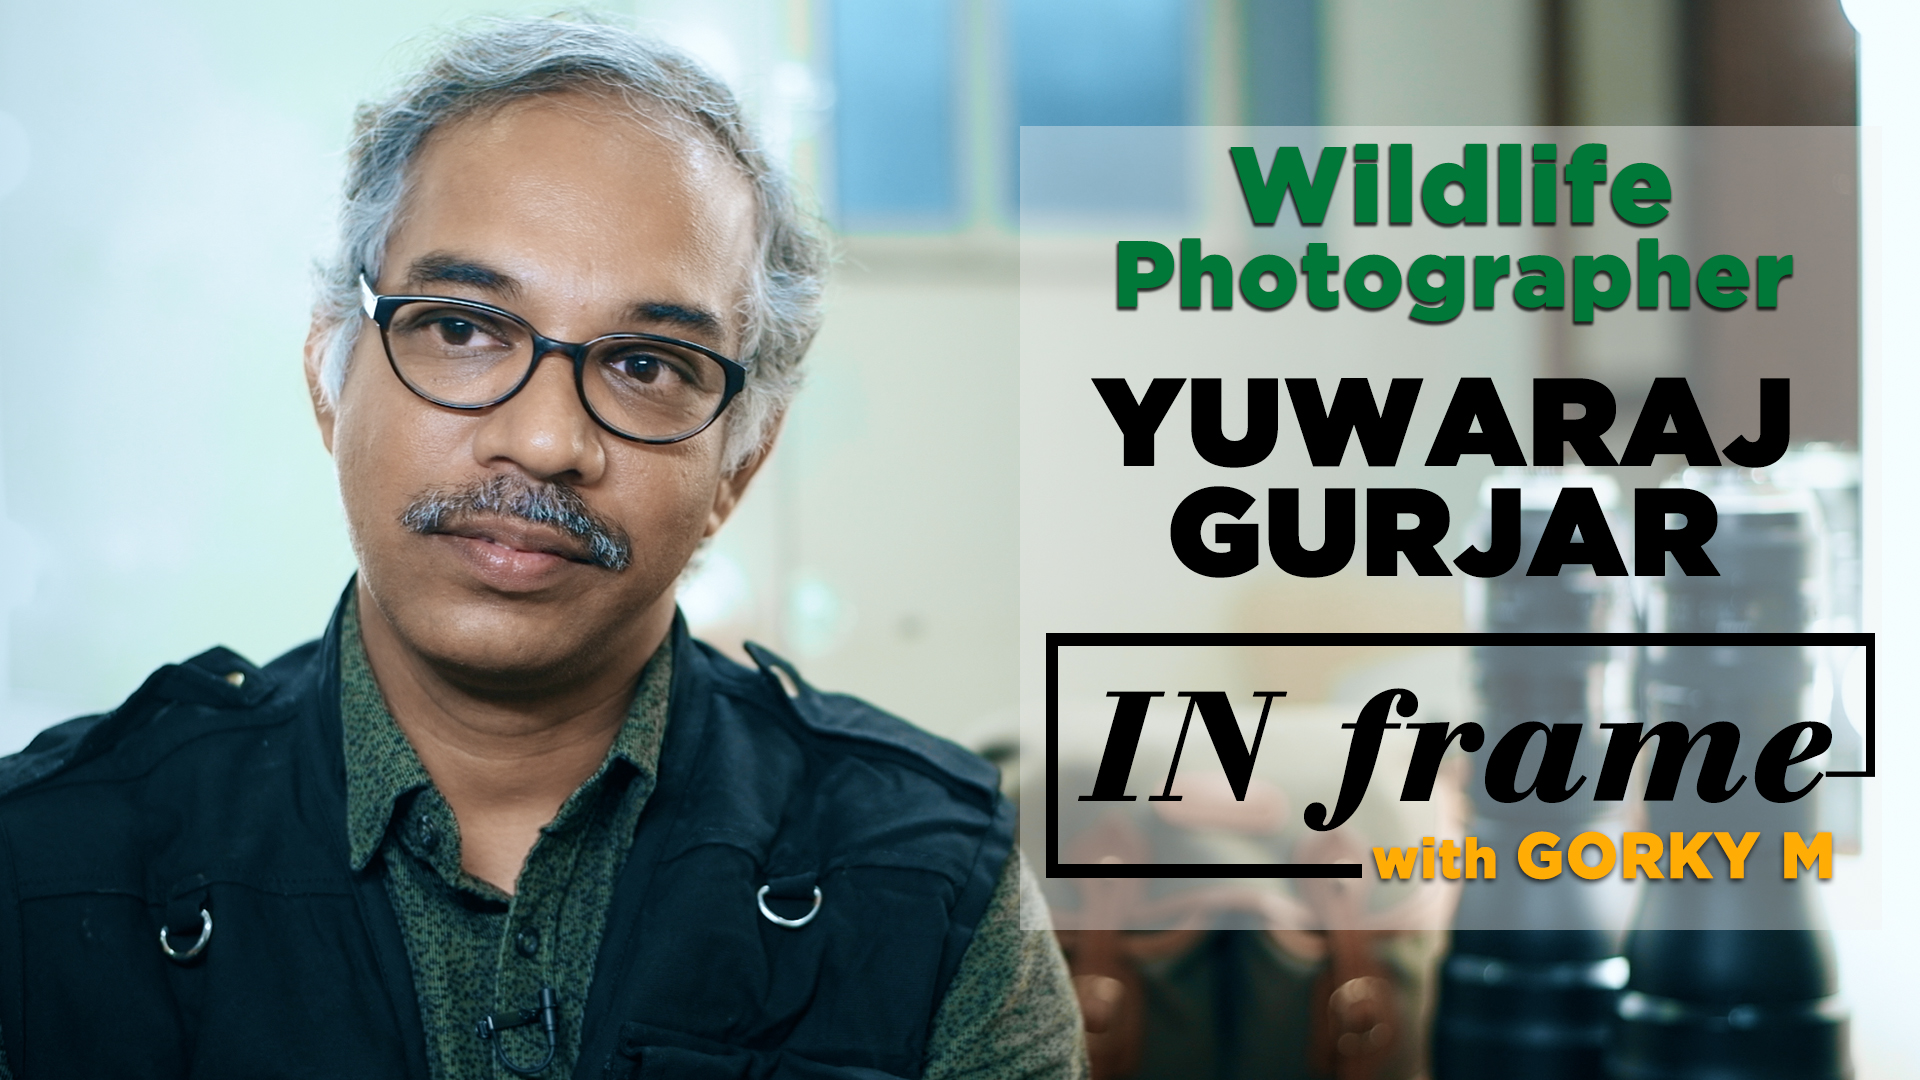 Beginner_wildlife_photography_tips_yuwaraj_gurjar_in_frame_with_gorky_m.jpg